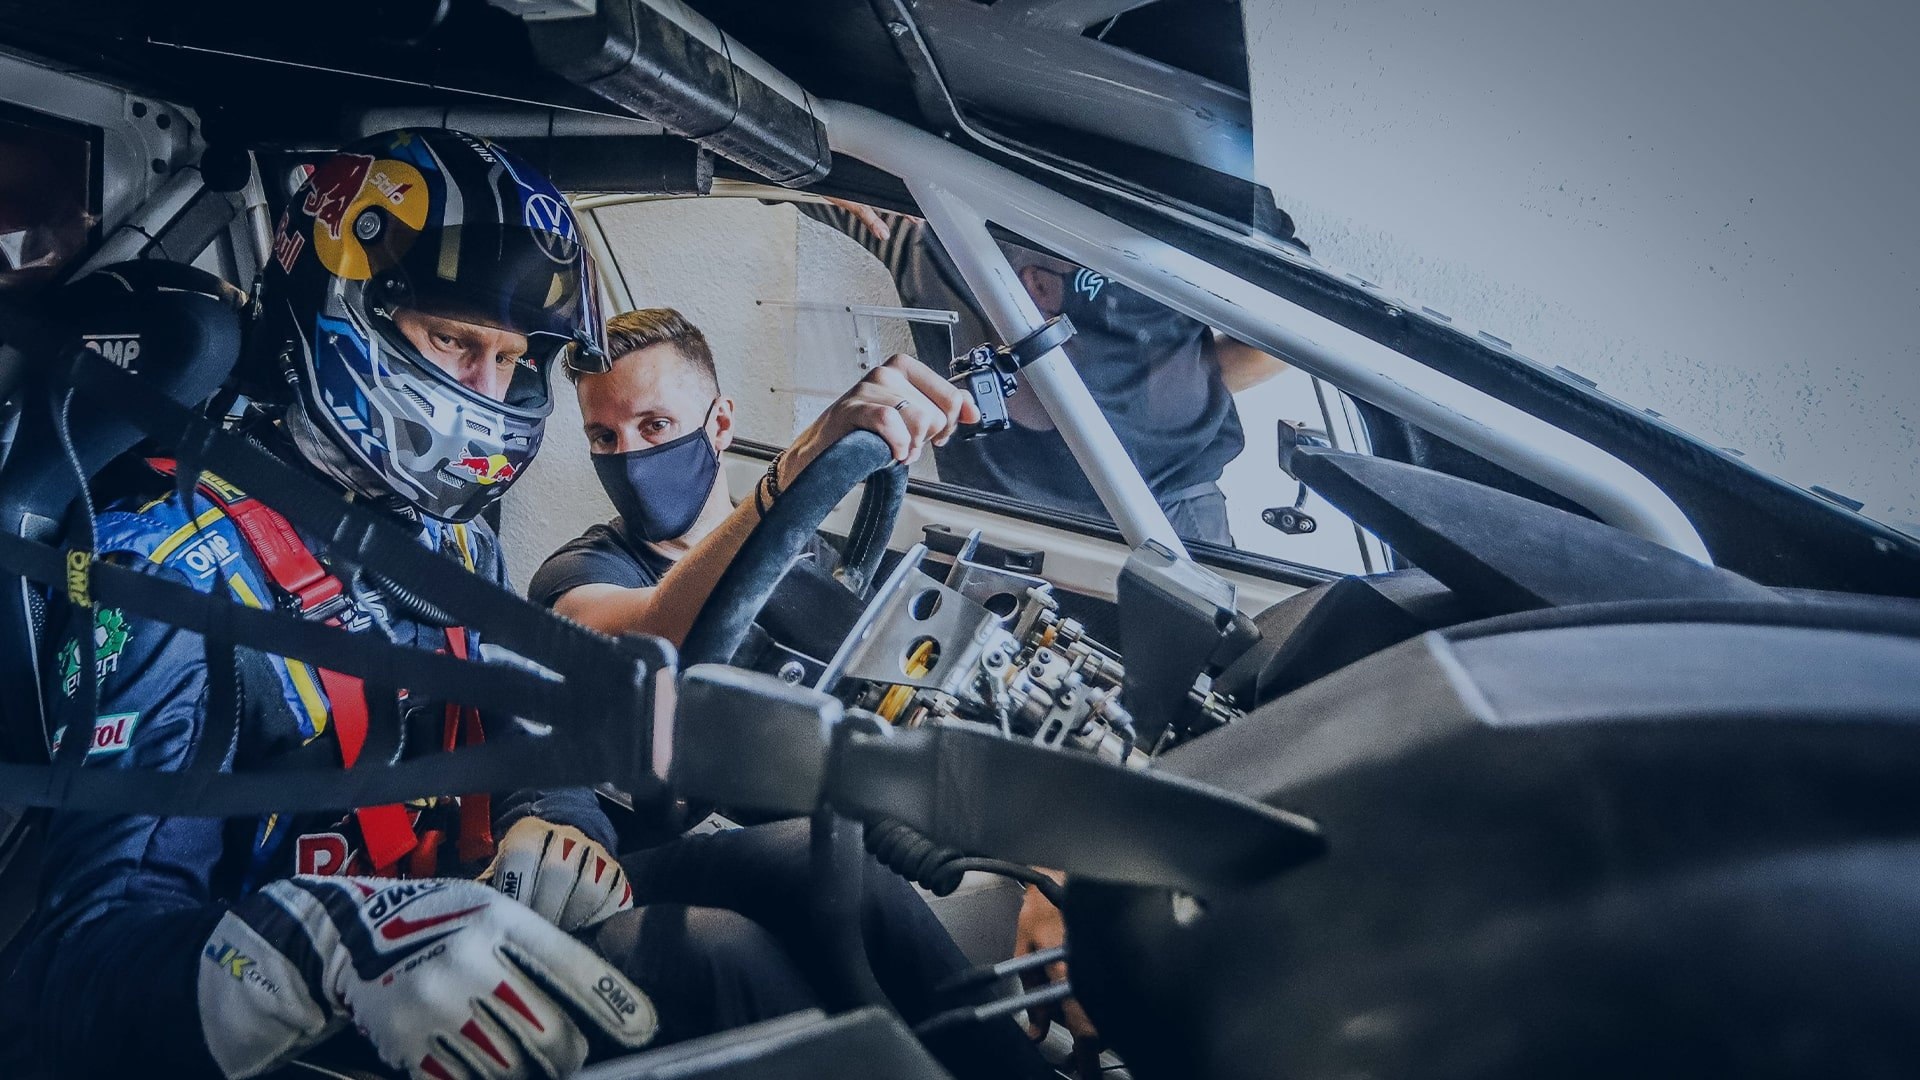 World Champ amongst interested visitors as FIA RX2e car laps up attention on international debut